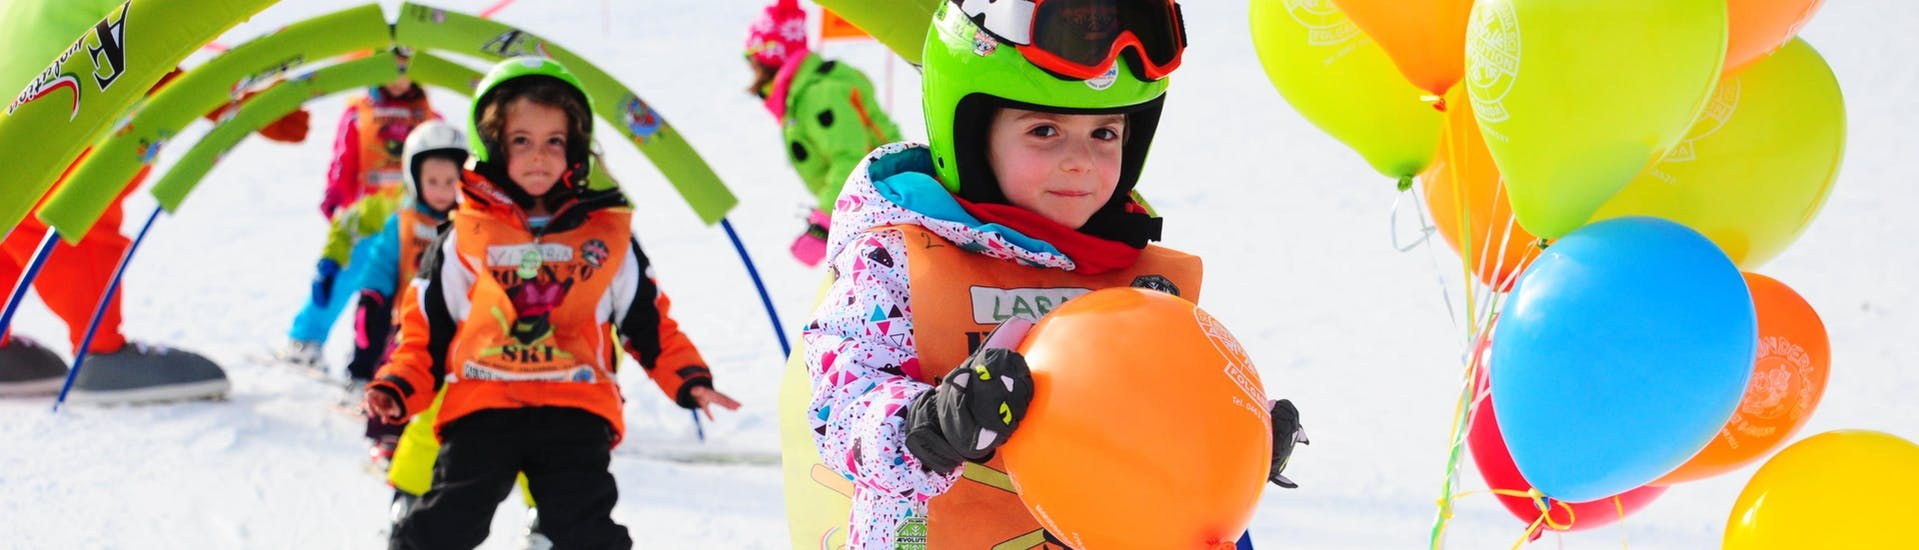 """The Kids Ski Lessons (4-8 years) """"Full Day"""" - All Levels of the AEvolution Folgarida Ski School are taking place in the school field; the child overcame the obstacles and deserved a balloon."""